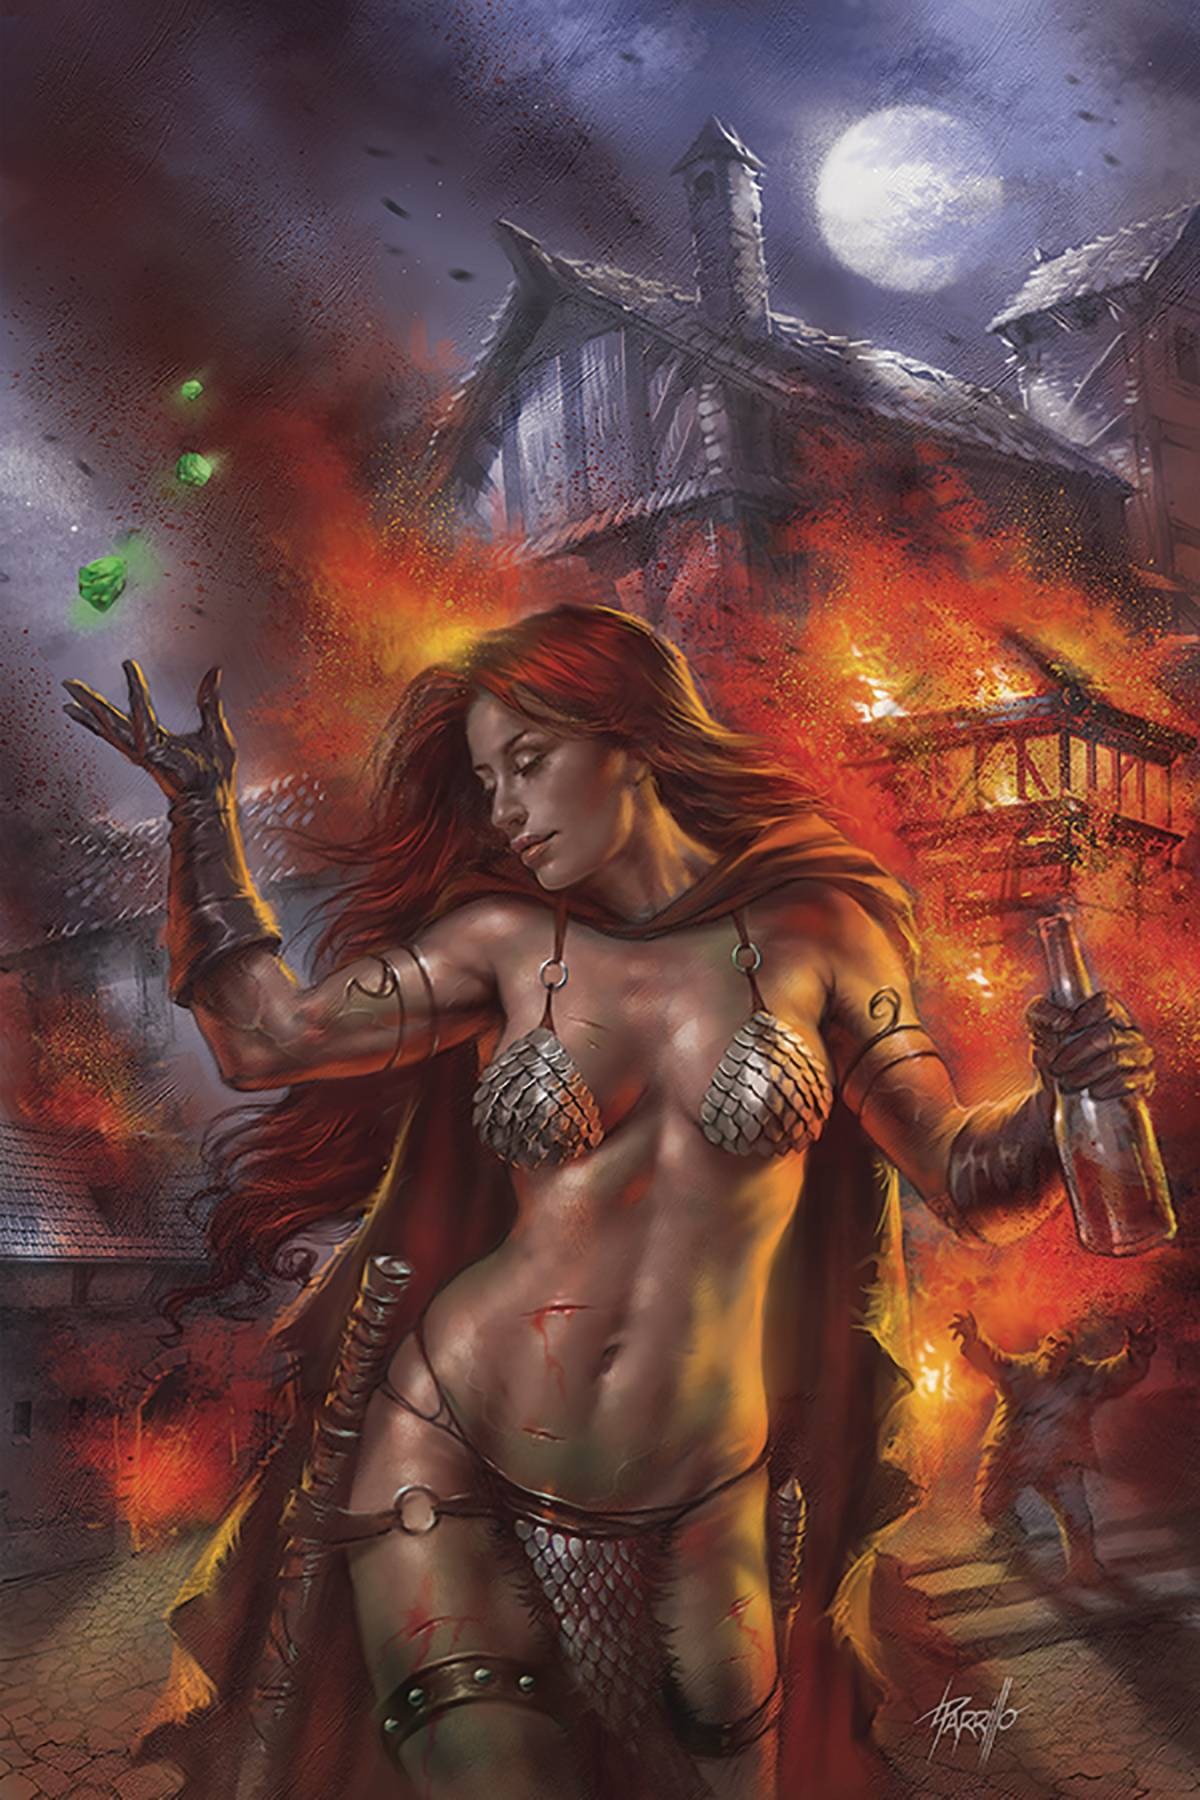 RED SONJA: BIRTH OF SHE DEVIL (MS 4)